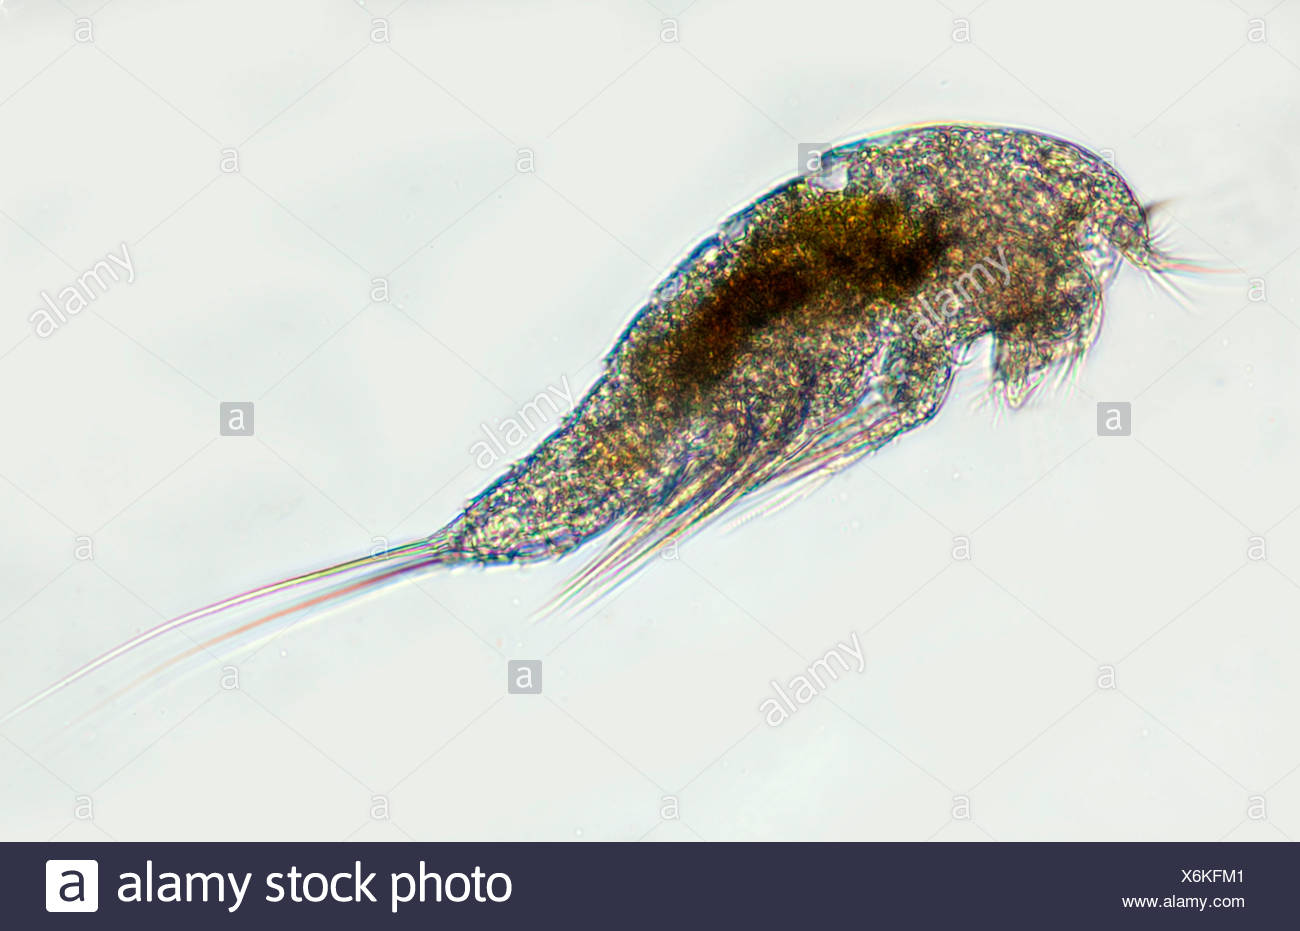 Marine Crustacean microscopic - Stock Image